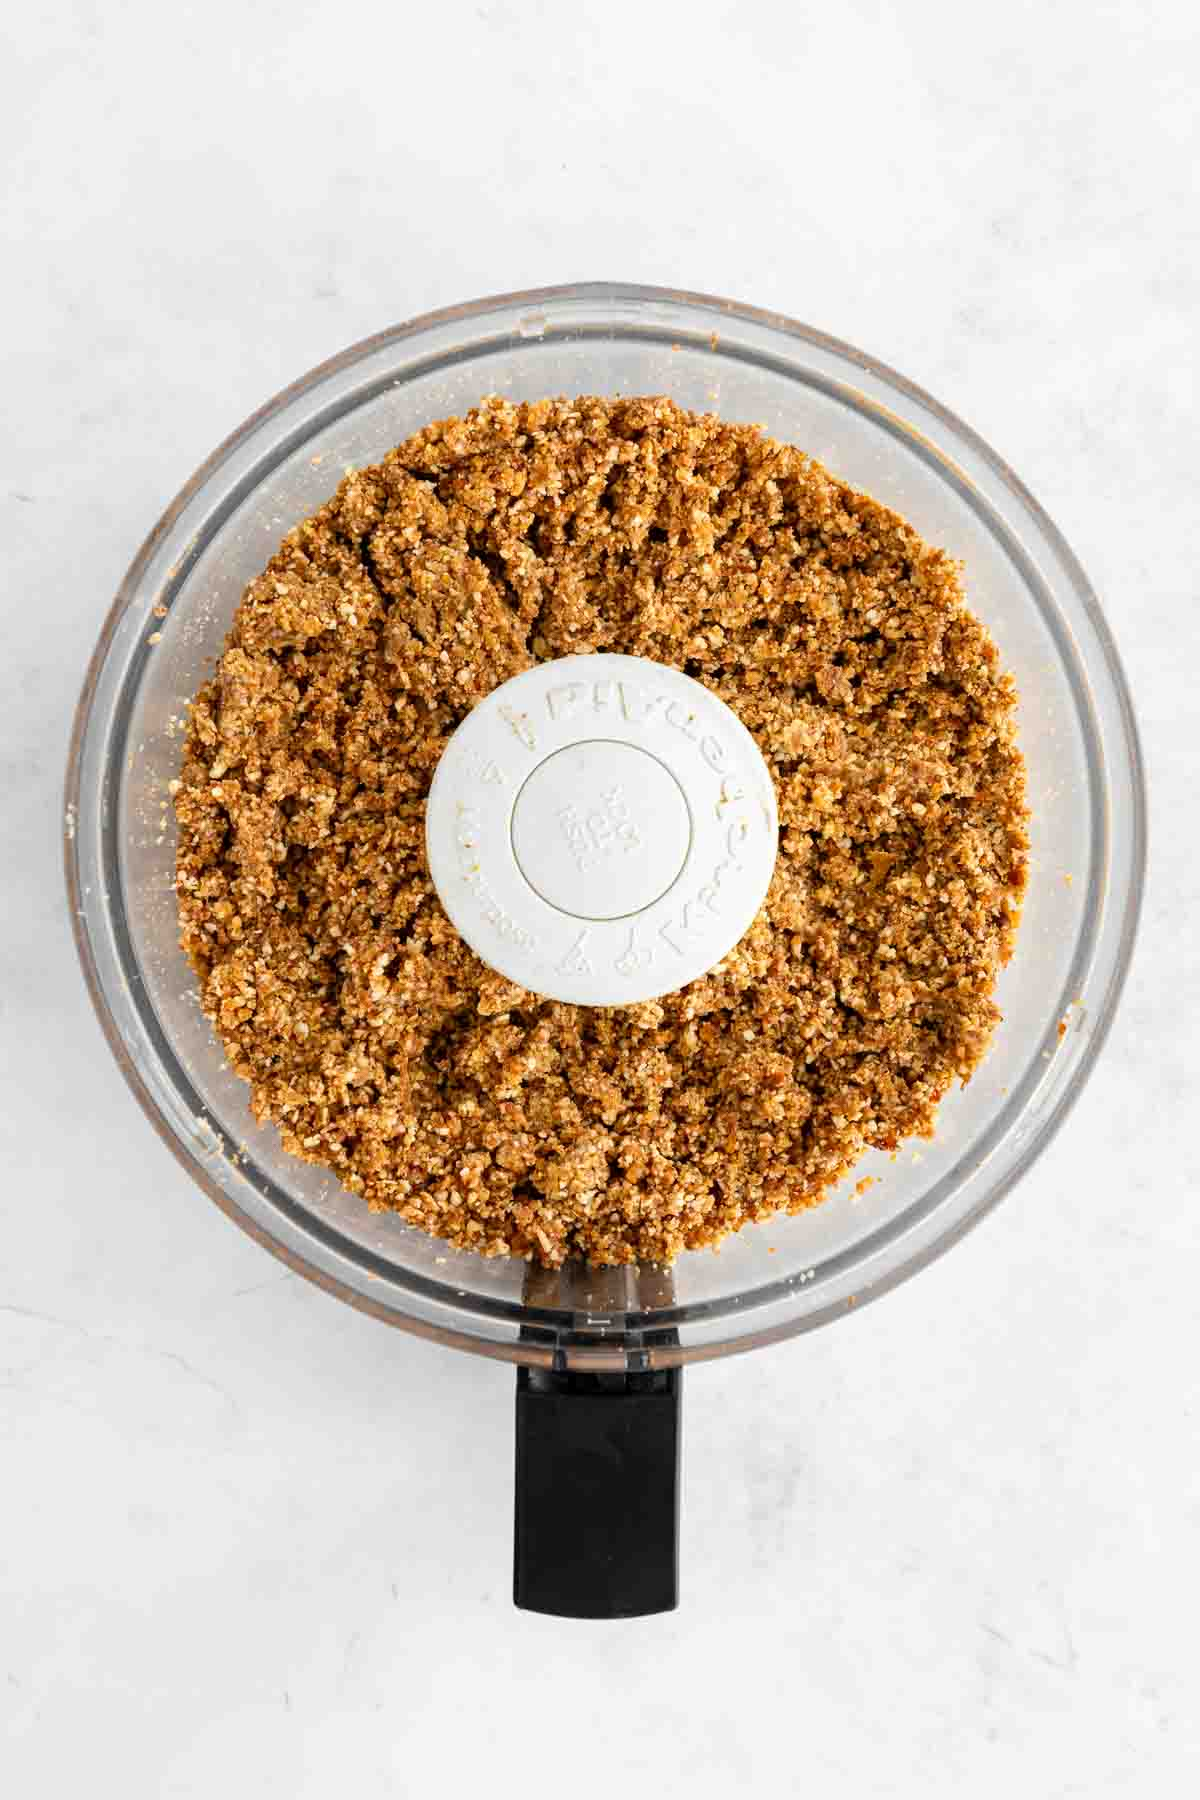 a mixture of dates, nuts, and oats blended inside a food processor